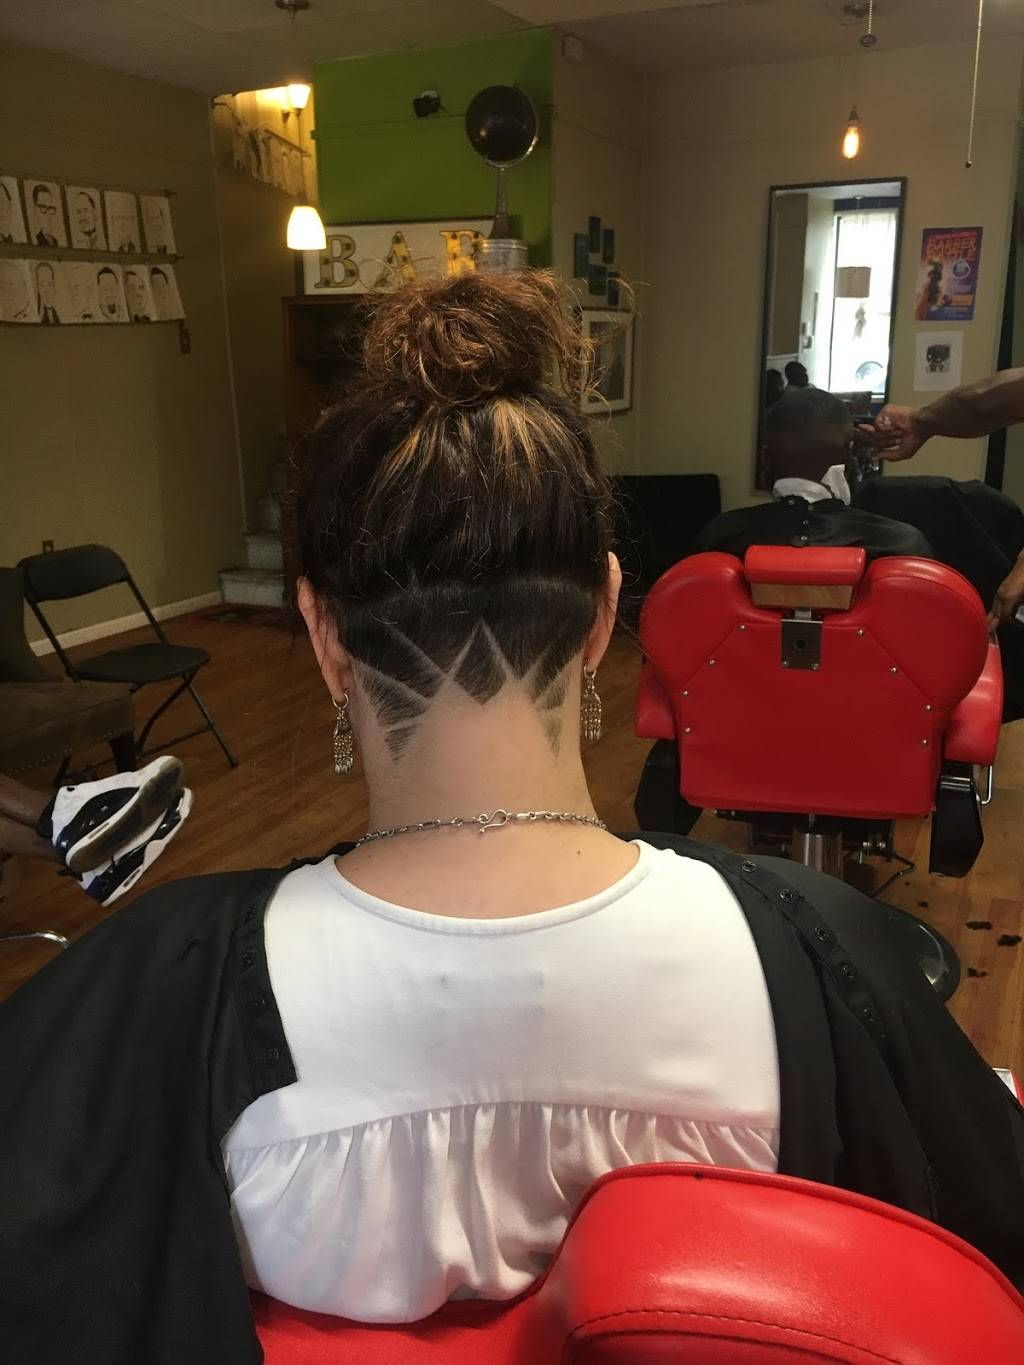 Society - hair care  | Photo 3 of 8 | Address: 503 Herron Ave, Pittsburgh, PA 15219, USA | Phone: (412) 475-9226